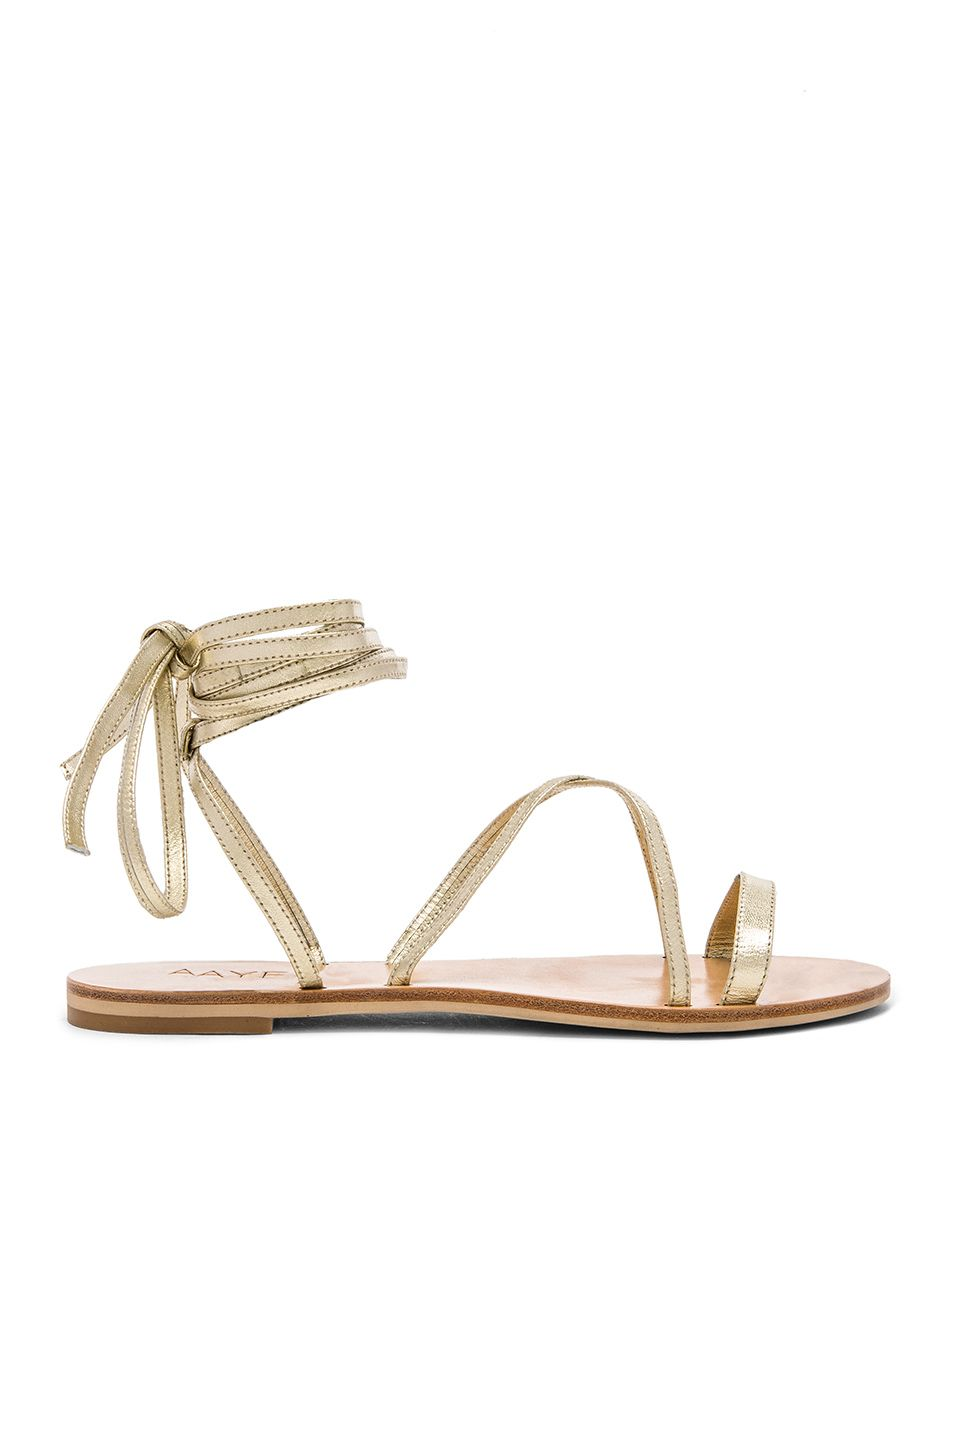 6ac3b978a517 Really liking this brand right now...super cute shoes!! RAYE Sadie  Gladiator Sandal in Gold